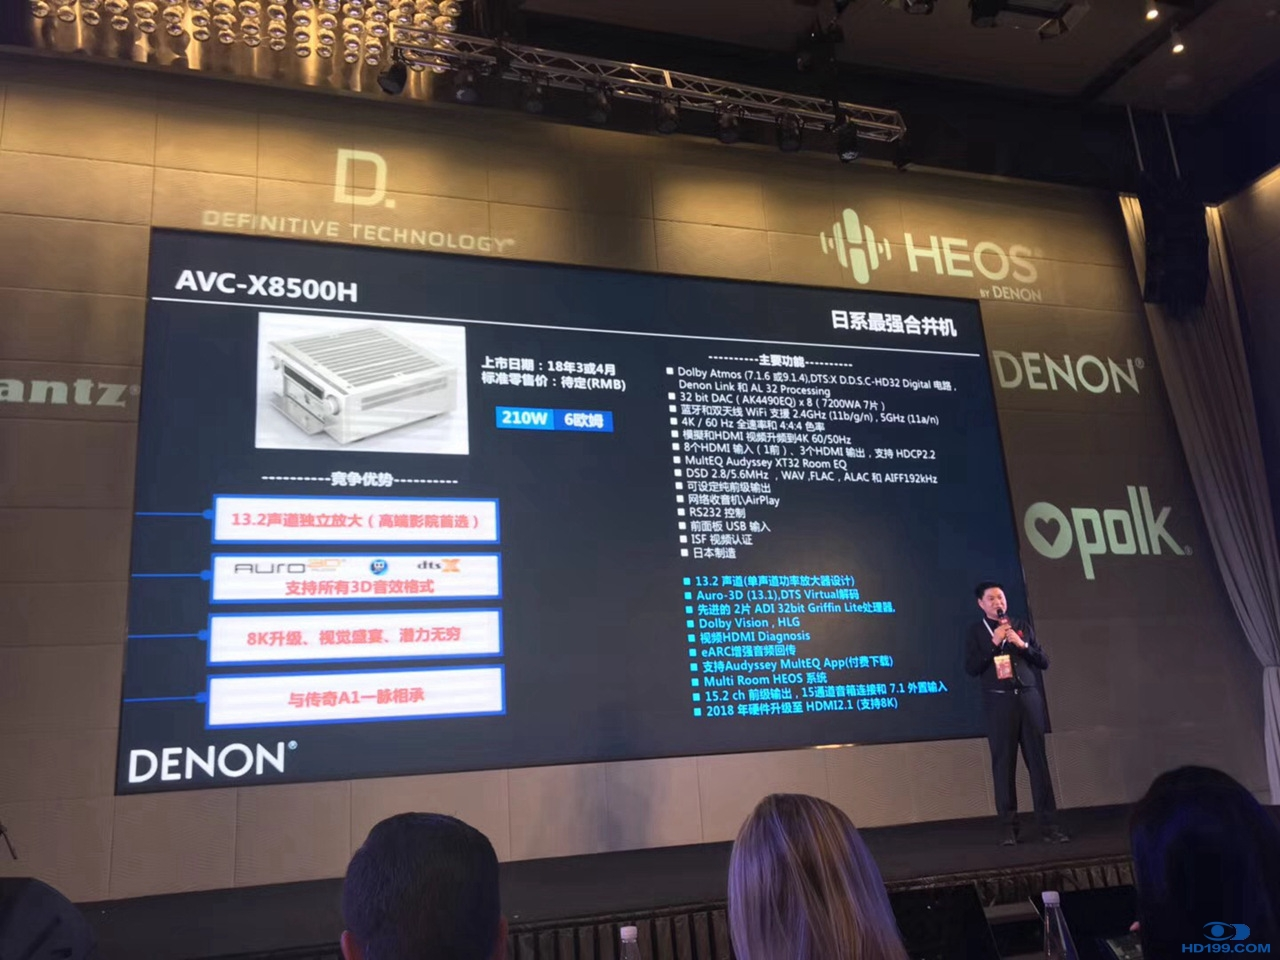 Official 2017 Denon S Series X Avr Owners Thread Xbox 360 Automatically Resets With Hdmi Switches Page 10 Avs Forum If Yall Havent Seen This Already Thought Youd Find It Interesting Nothing Else Most Of Its In Japan Speak But The Small Tidbits That Can Be Made